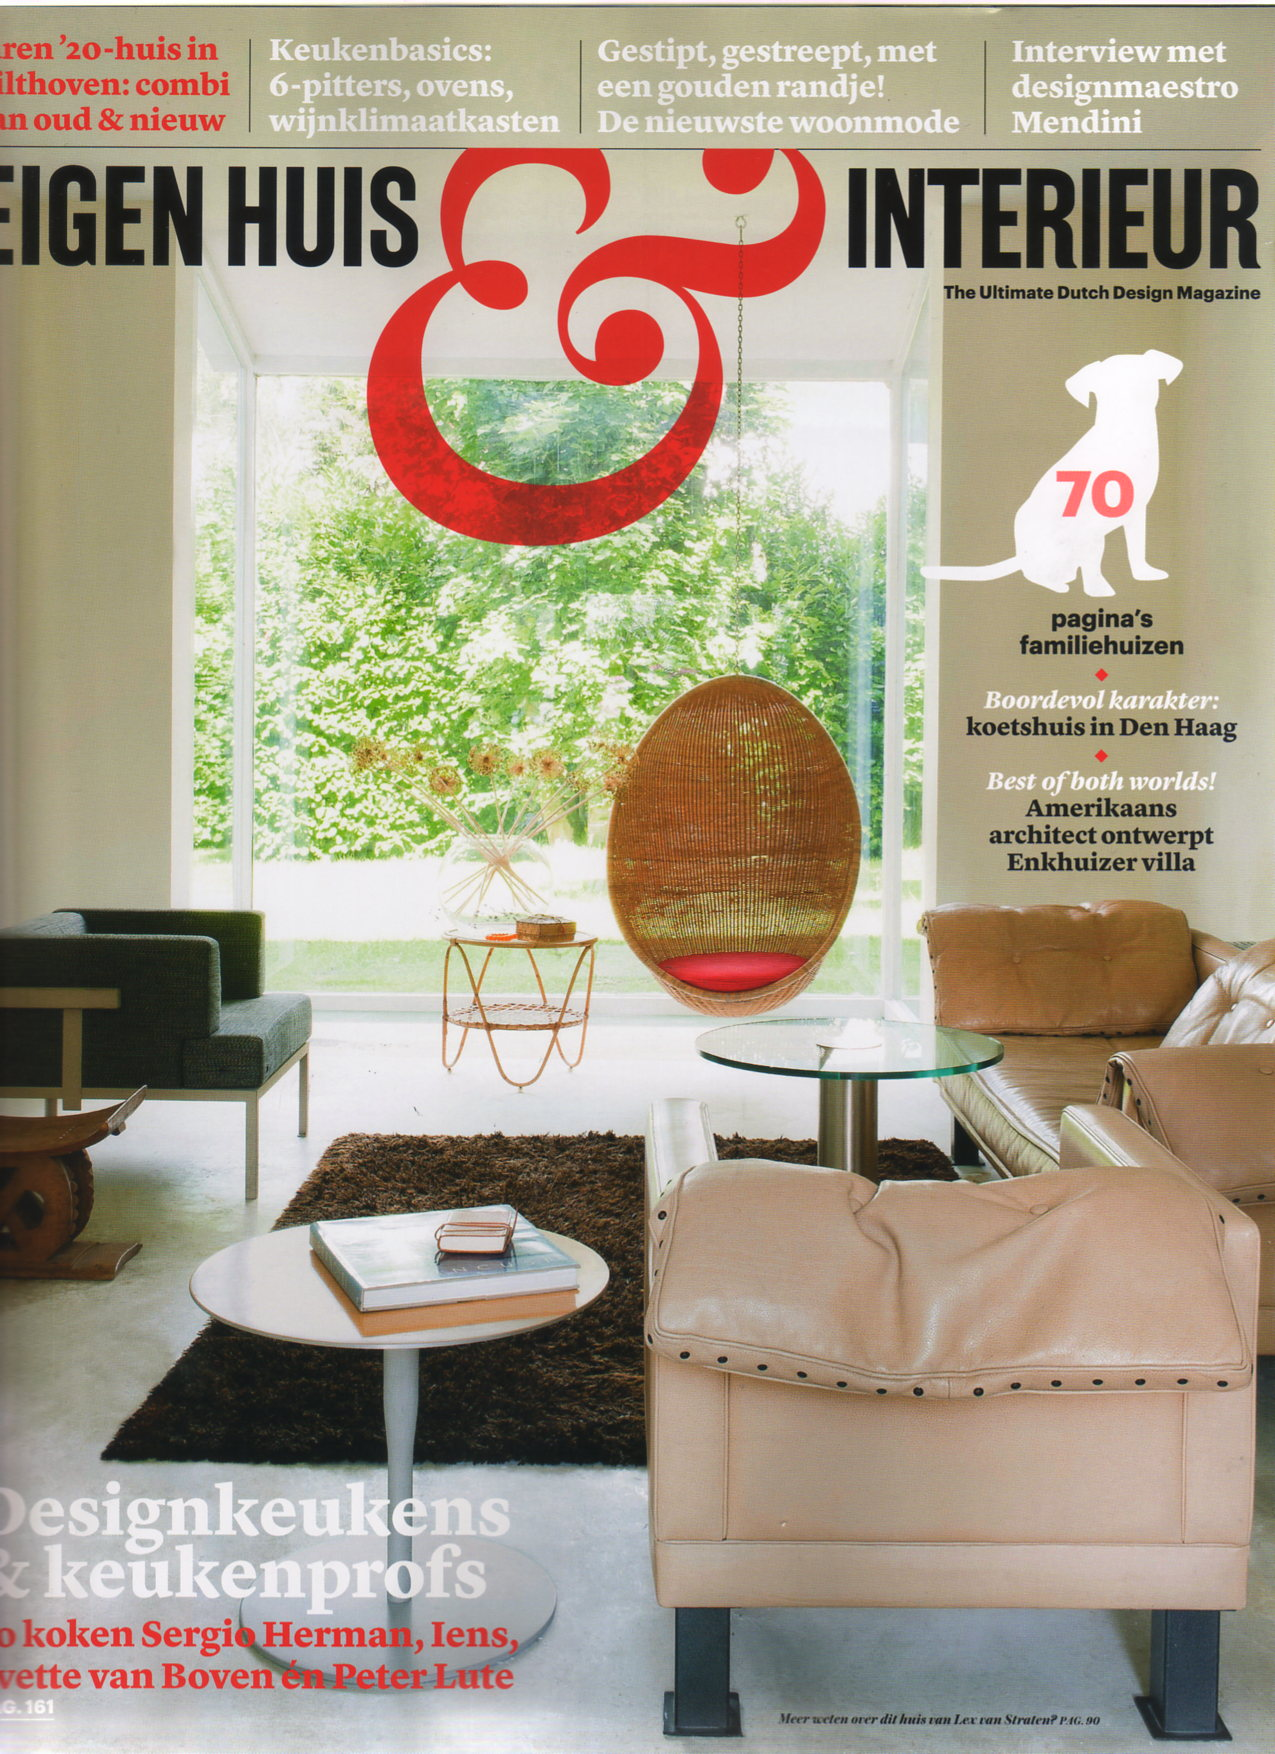 Eigen huis interieur features opposites attract melvin for Eigenhuis en interieur